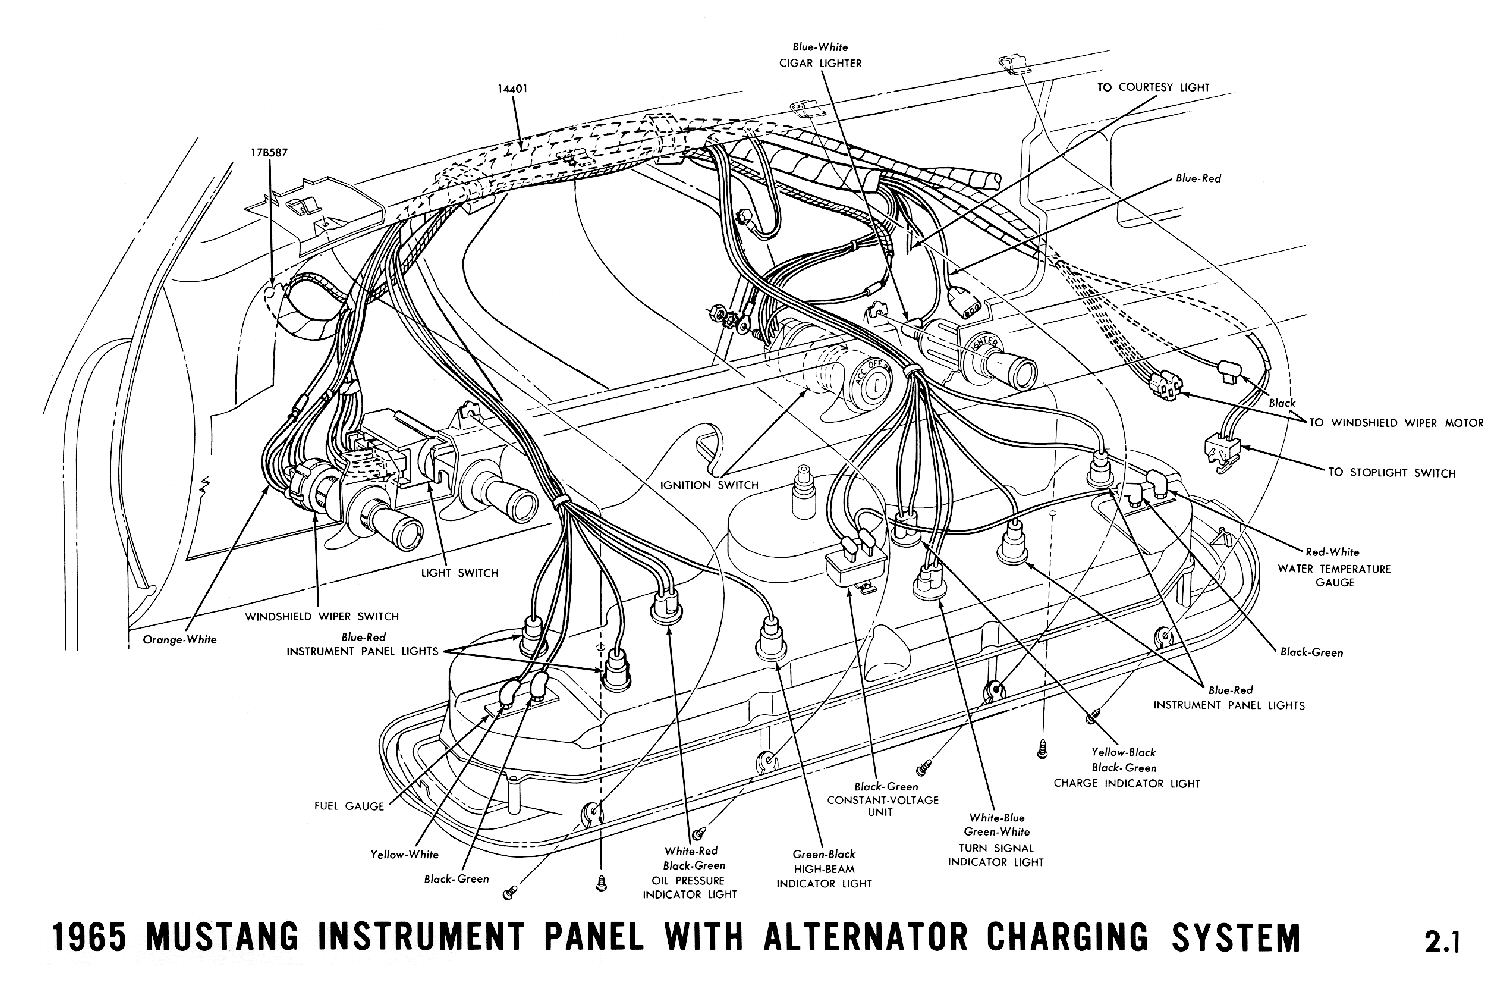 1965a 65 mustang dash wiring diagram 1965 ford mustang wiring diagram 67 mustang wiring harness at crackthecode.co